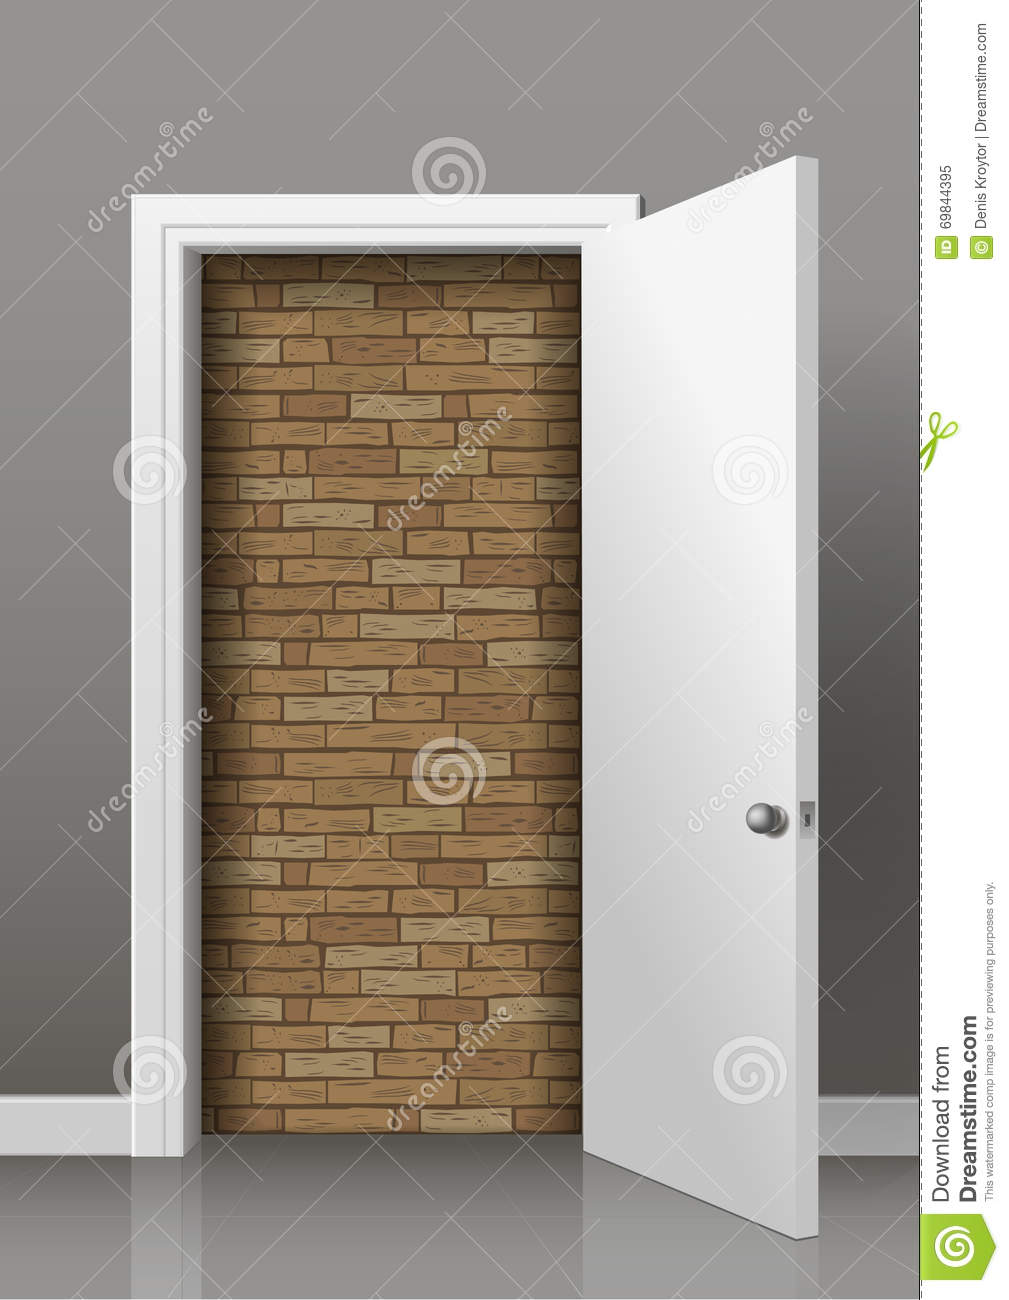 wall-behind-door-brick-open-white-room-lack-access-deadlock-69844395